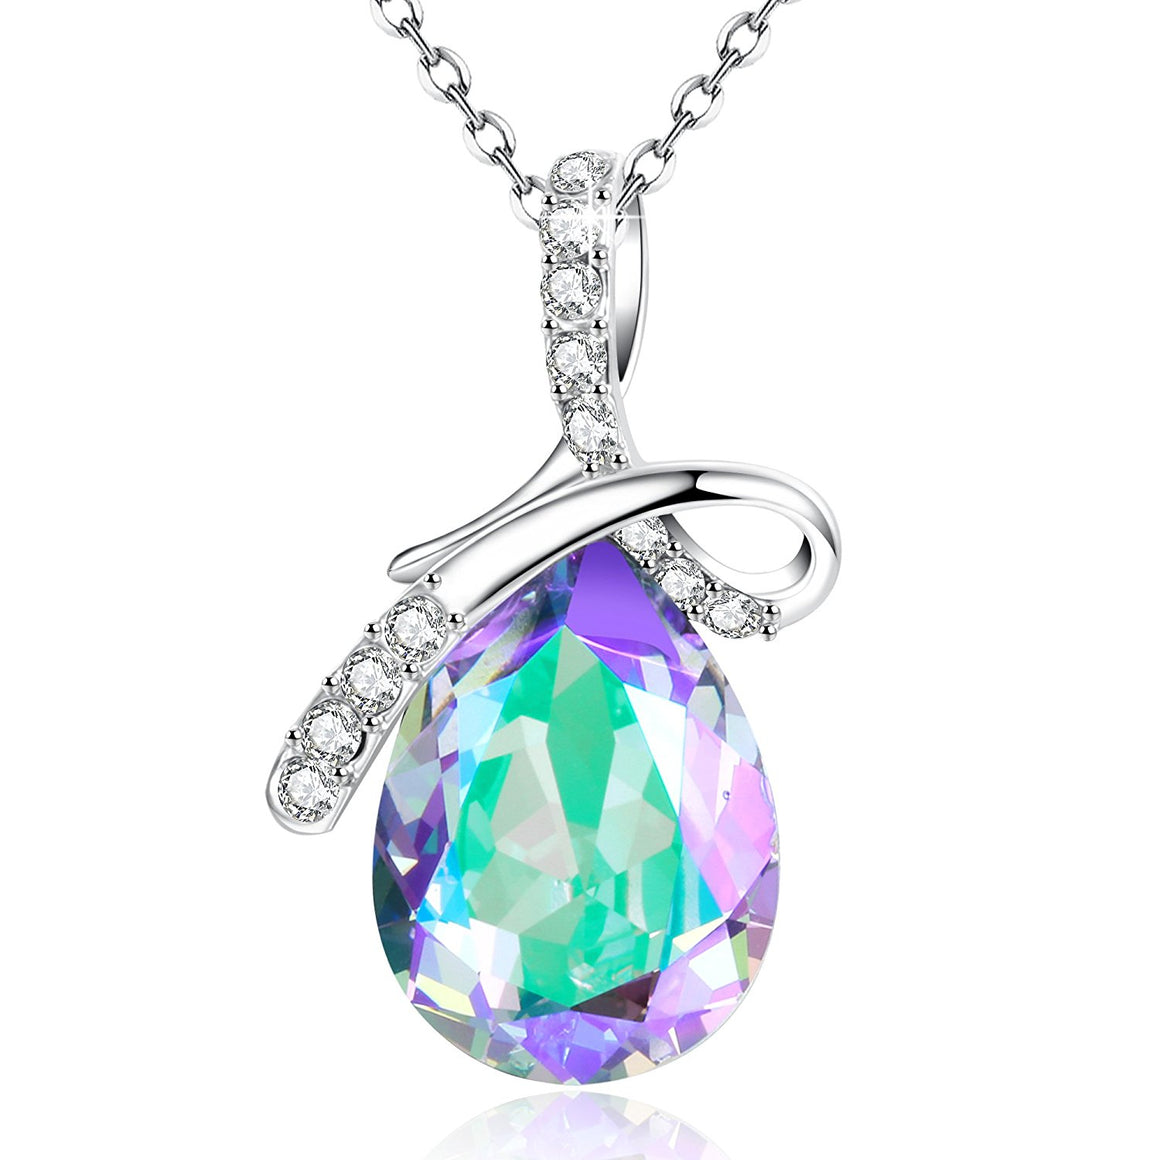 """Crystal Lake"" Purple Pendant Necklace Teardrop Shaped Jewelry Gift,Made with Swarovski CrystaI"